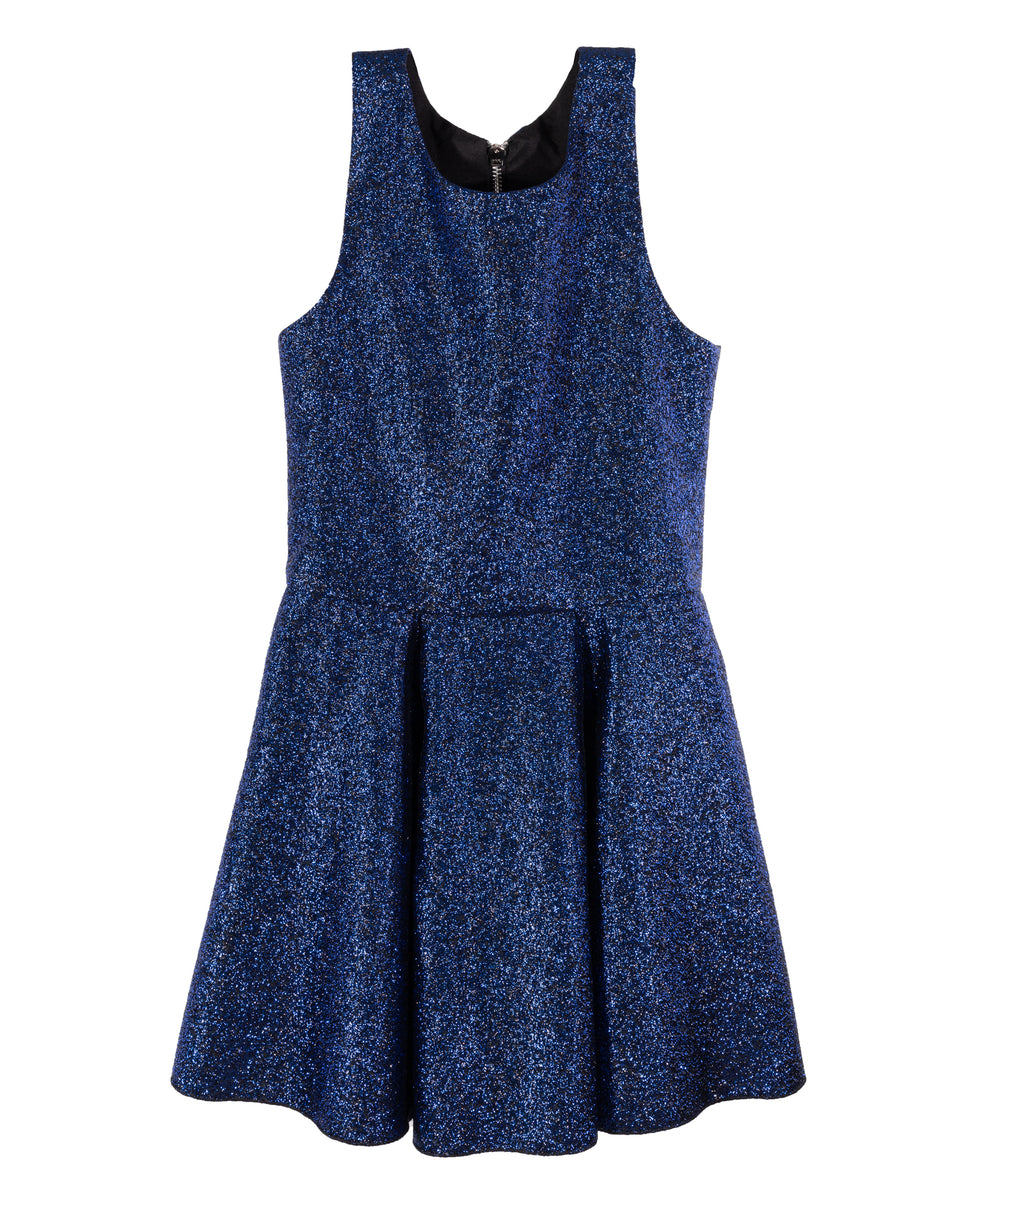 Zoe Ltd. Girls Royal Blue Metallic Dress